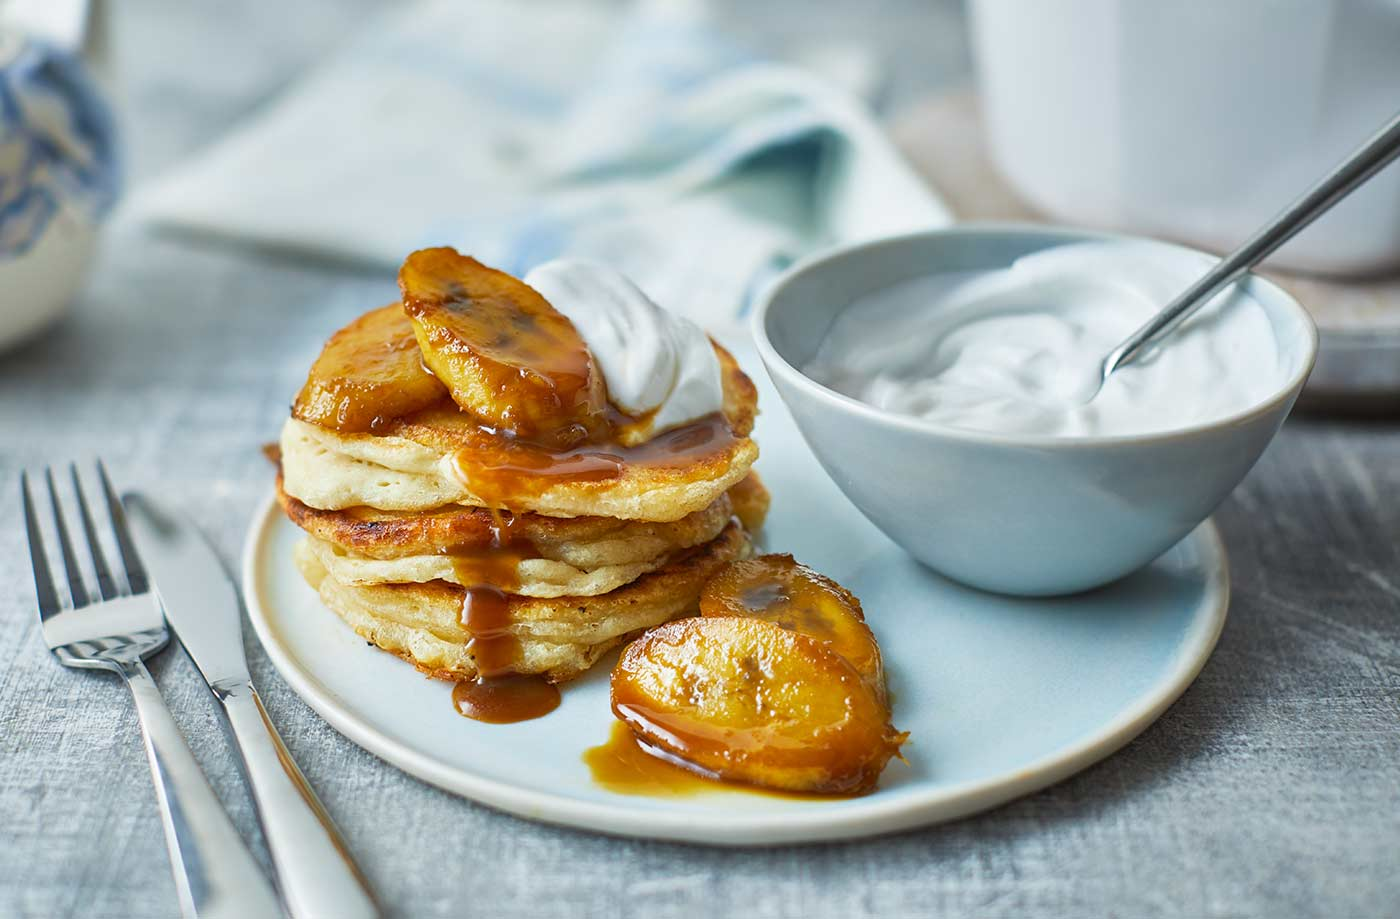 Vegan coconut pancakes with caramelised bananas recipe